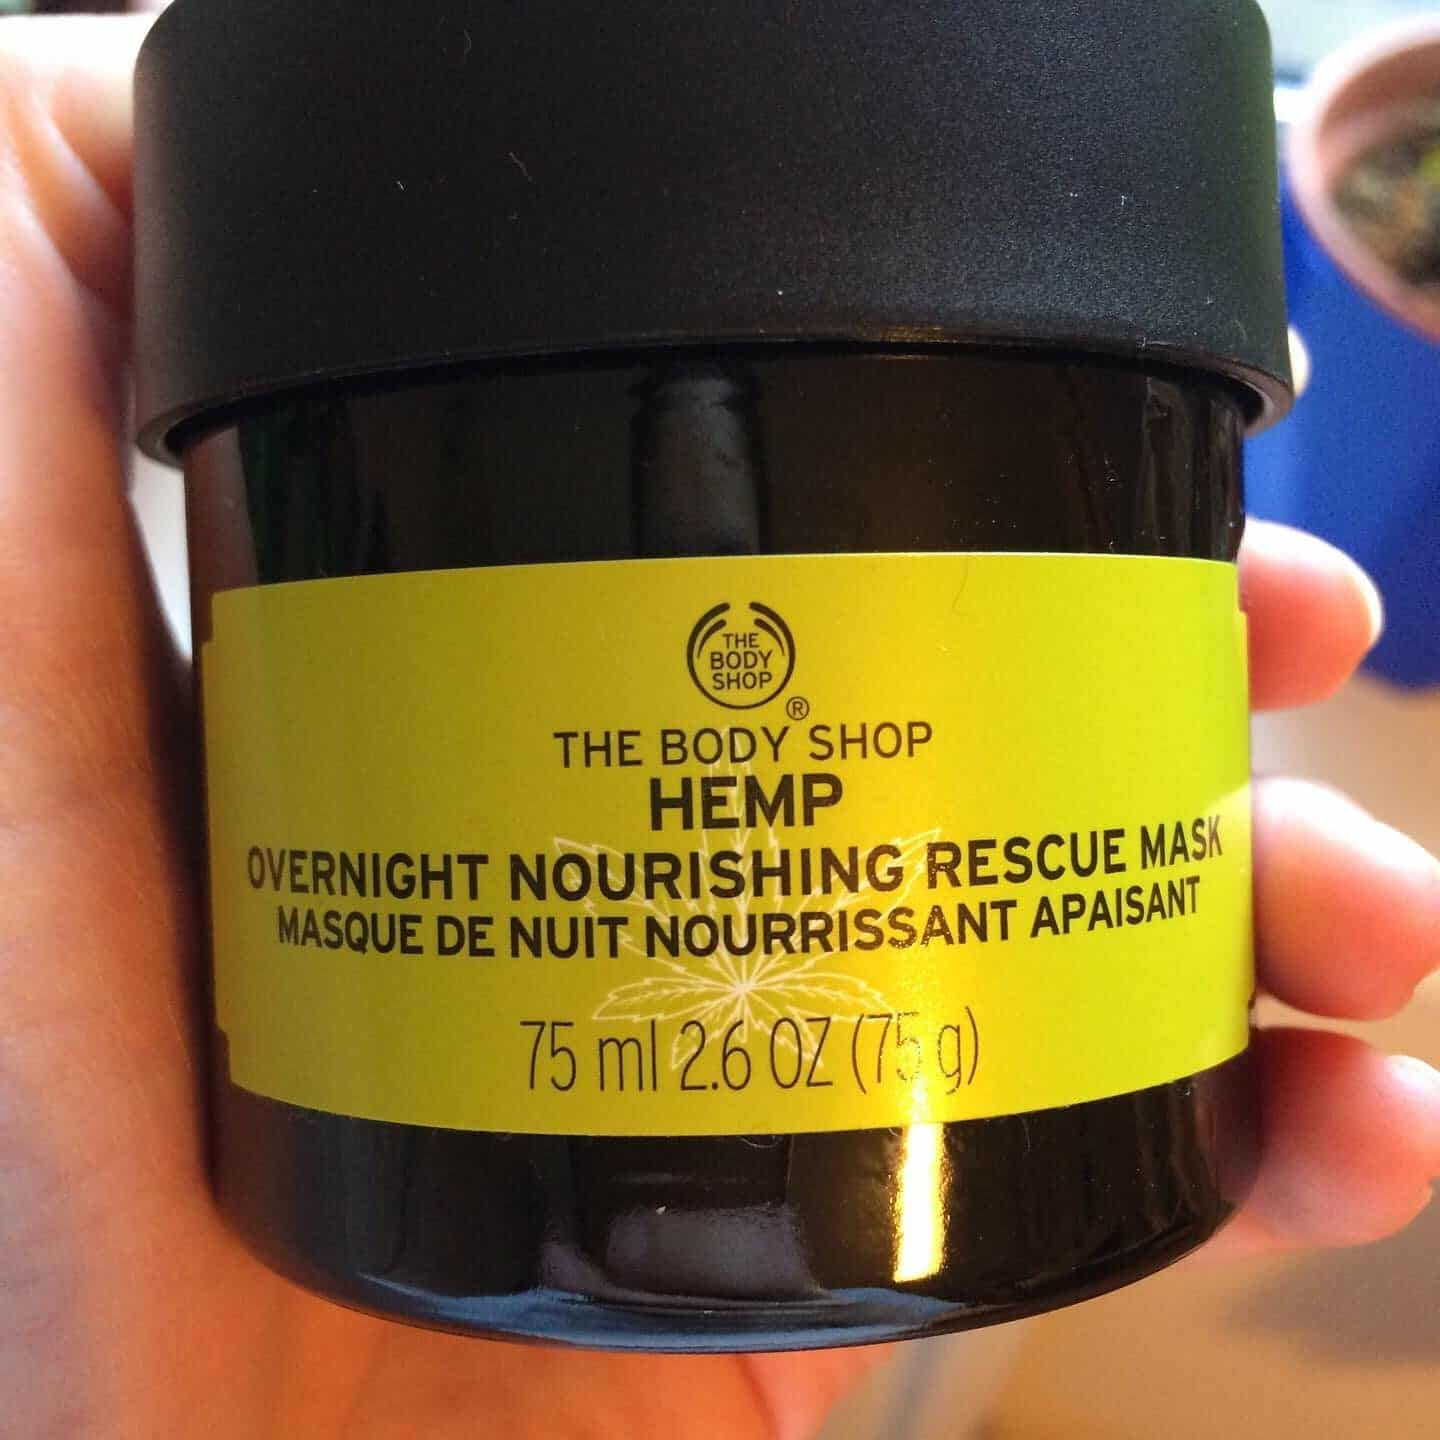 The Body Shop® Hemp Range has two new products: Overnight Nourishing Rescue Mask and Hydrating Protecting Shower Oil.  These products are aimed at ultra dry skin.  On face, remedies, body, eczema, care routine, on legs, psoriasis, dermatitis, dryness, on hands, winter, protection from elements, clinical trial, hydration, moisturise, moisturizing, skin, severe itchy, redness, overnight, extra, extremely, very, elbows, for men #skincare #beauty #facemask #overnightmask #shower #showeroil #dryskin